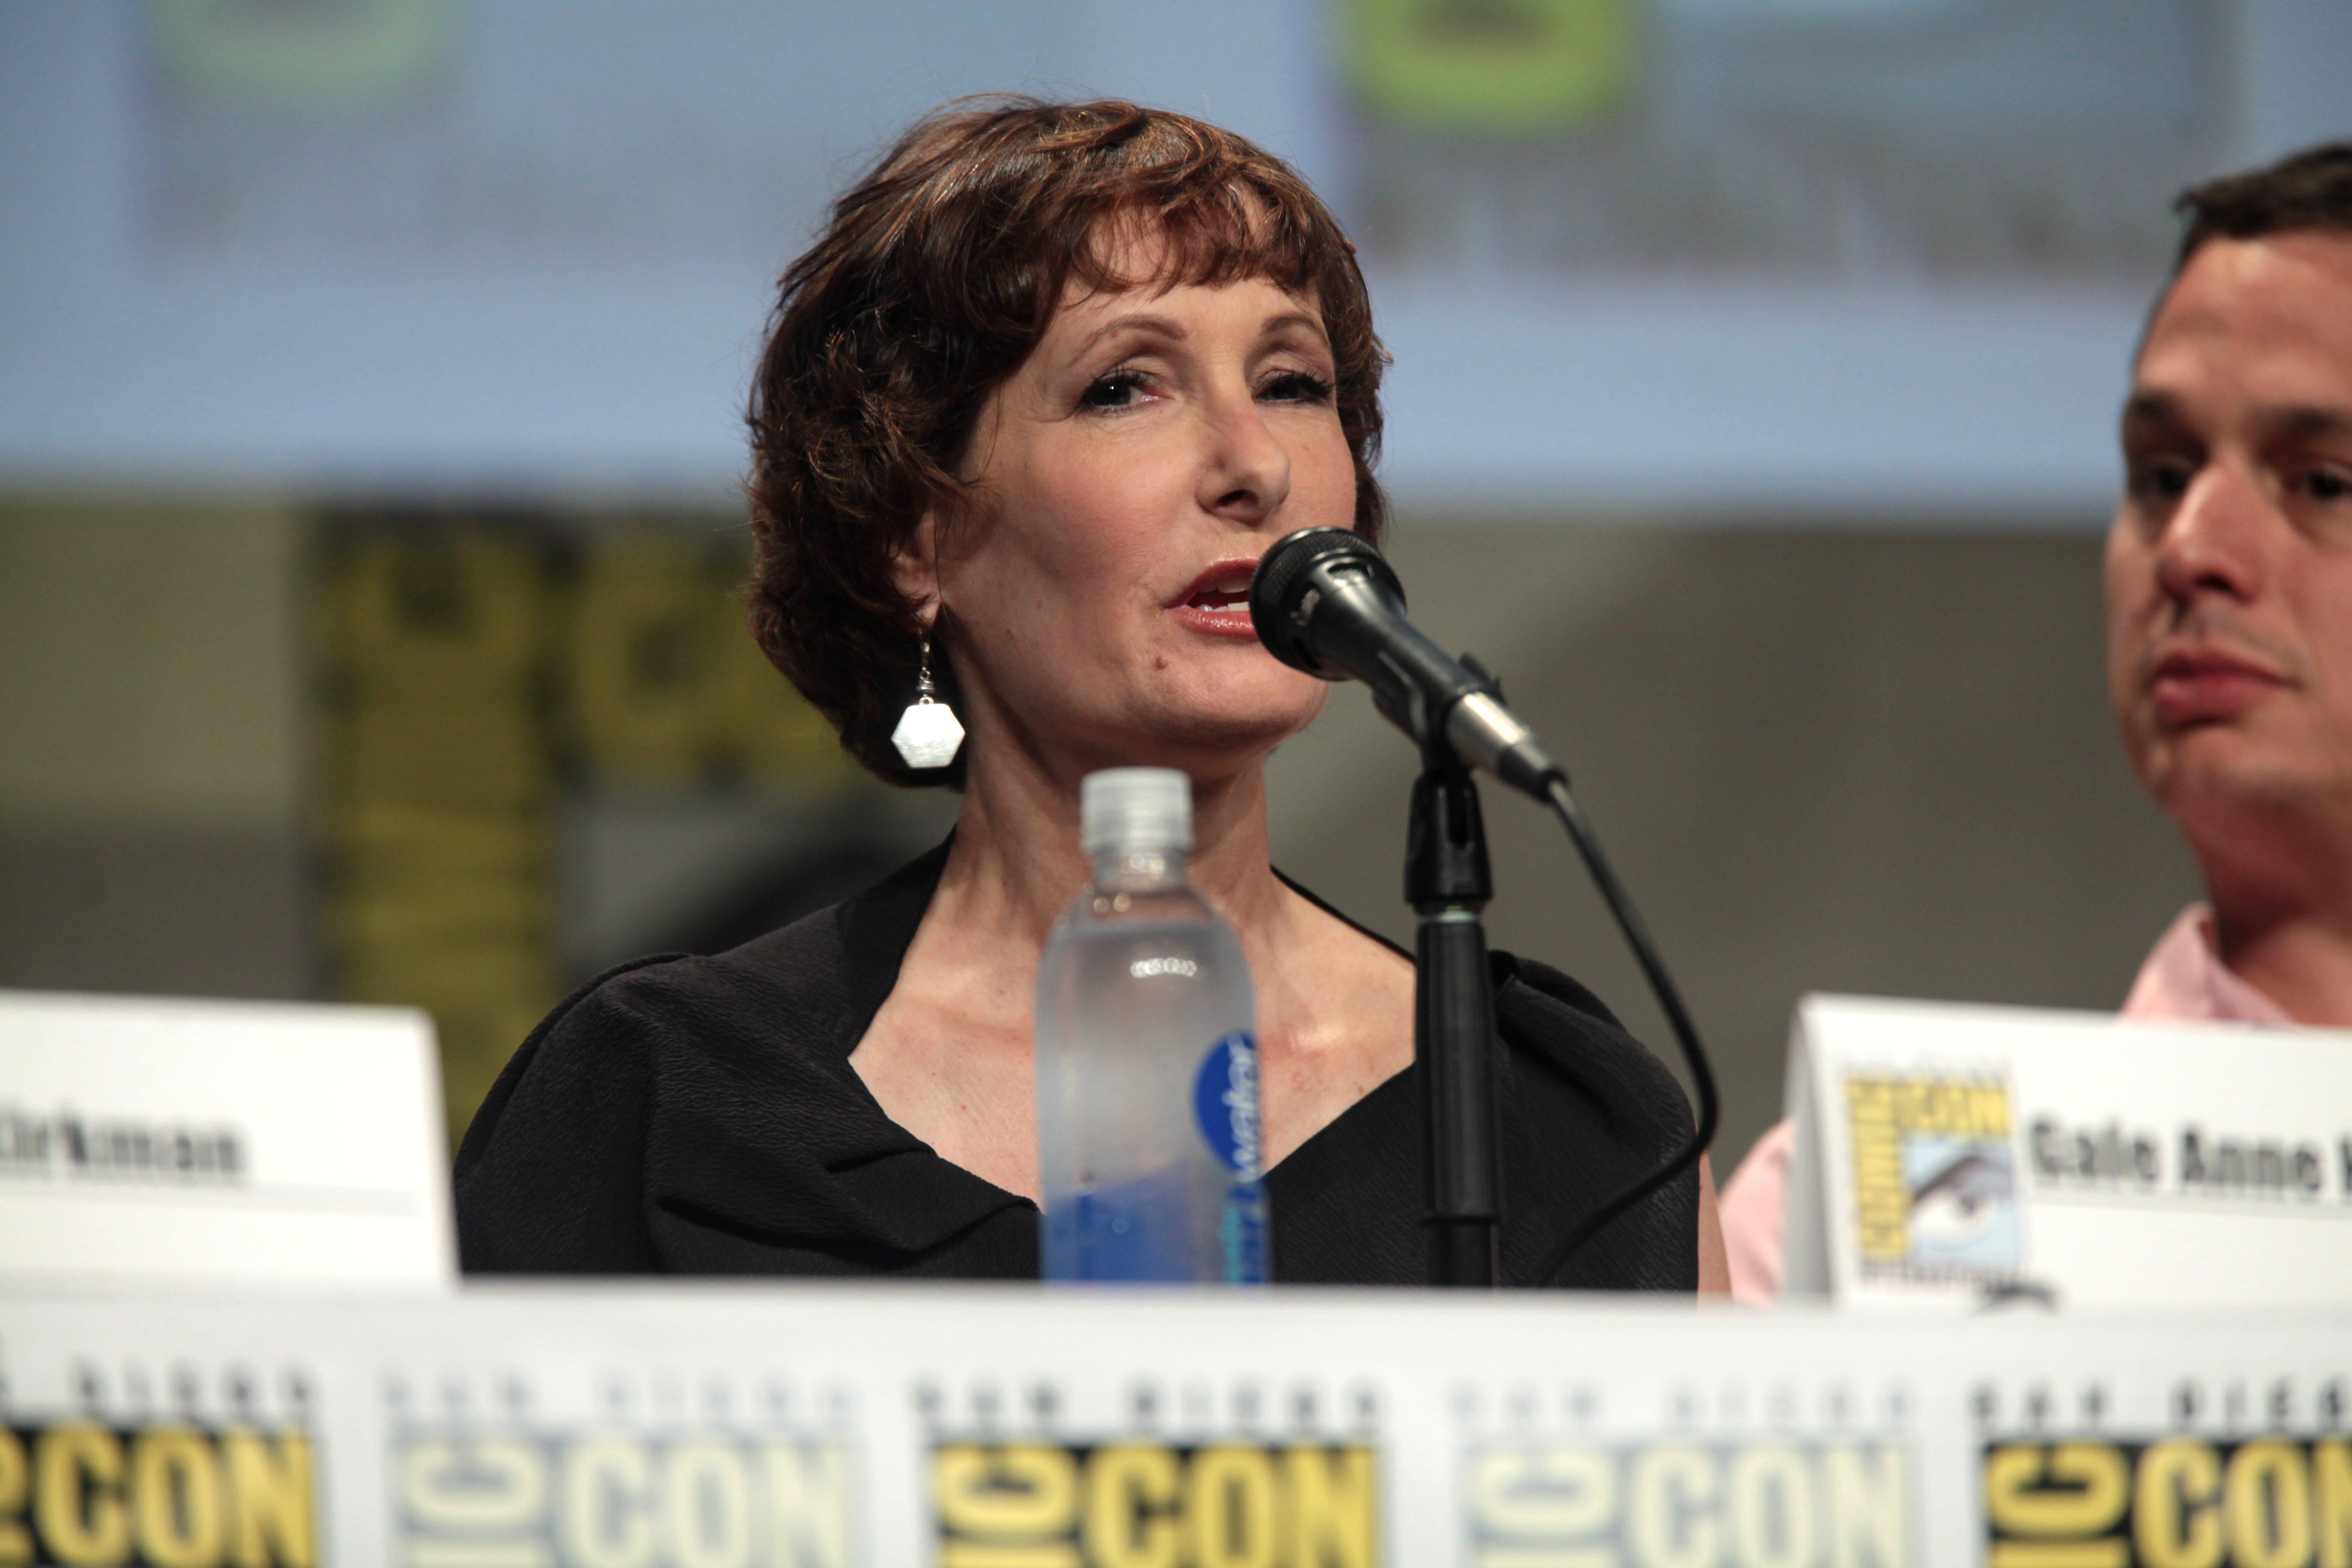 Executive Producer of The Walking Dead Gale Anne Hurd /CC BY-SA 2.0/ Gage Skidmore / flickr